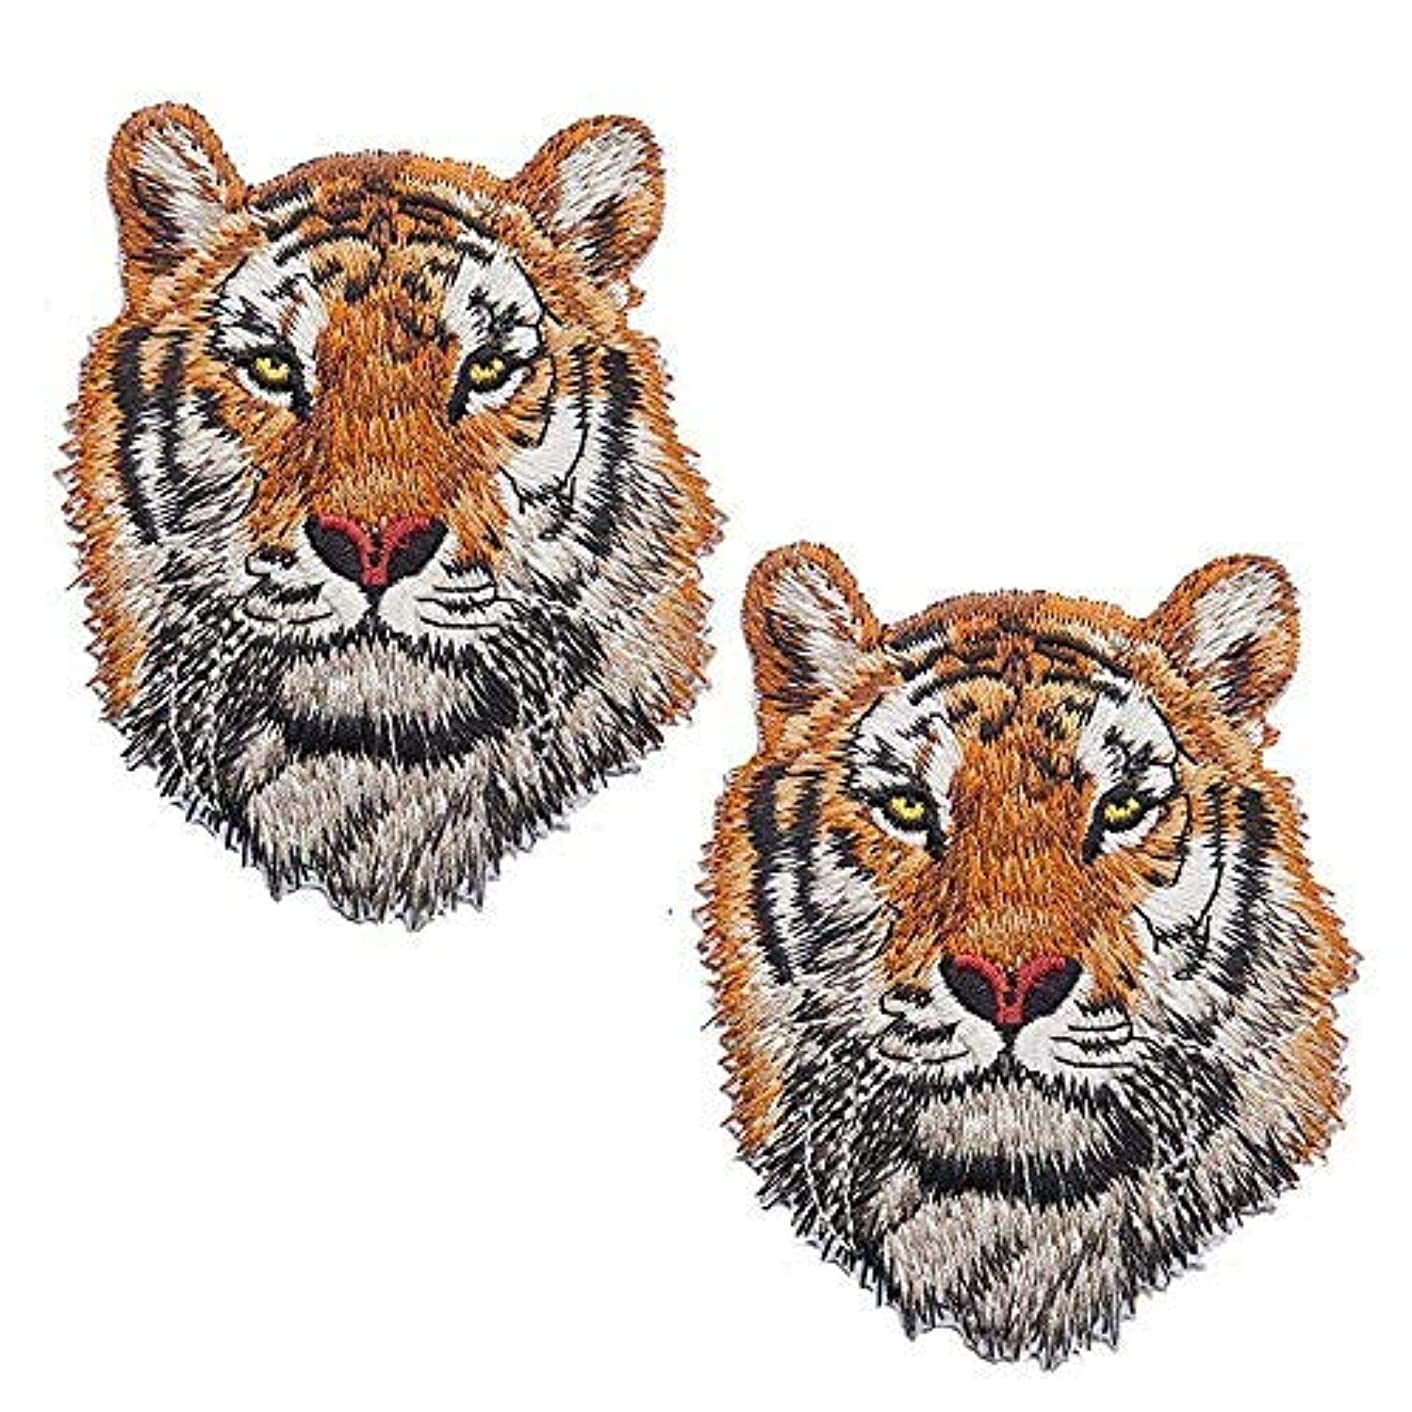 2 Pack Delicate Embroidered Patches, 2 Tiger Embroidery Patches, Iron On Patches, Sew On Applique Patch, Custom Backpack Patches for Men, Boys, Kids, Super Cool! (L)